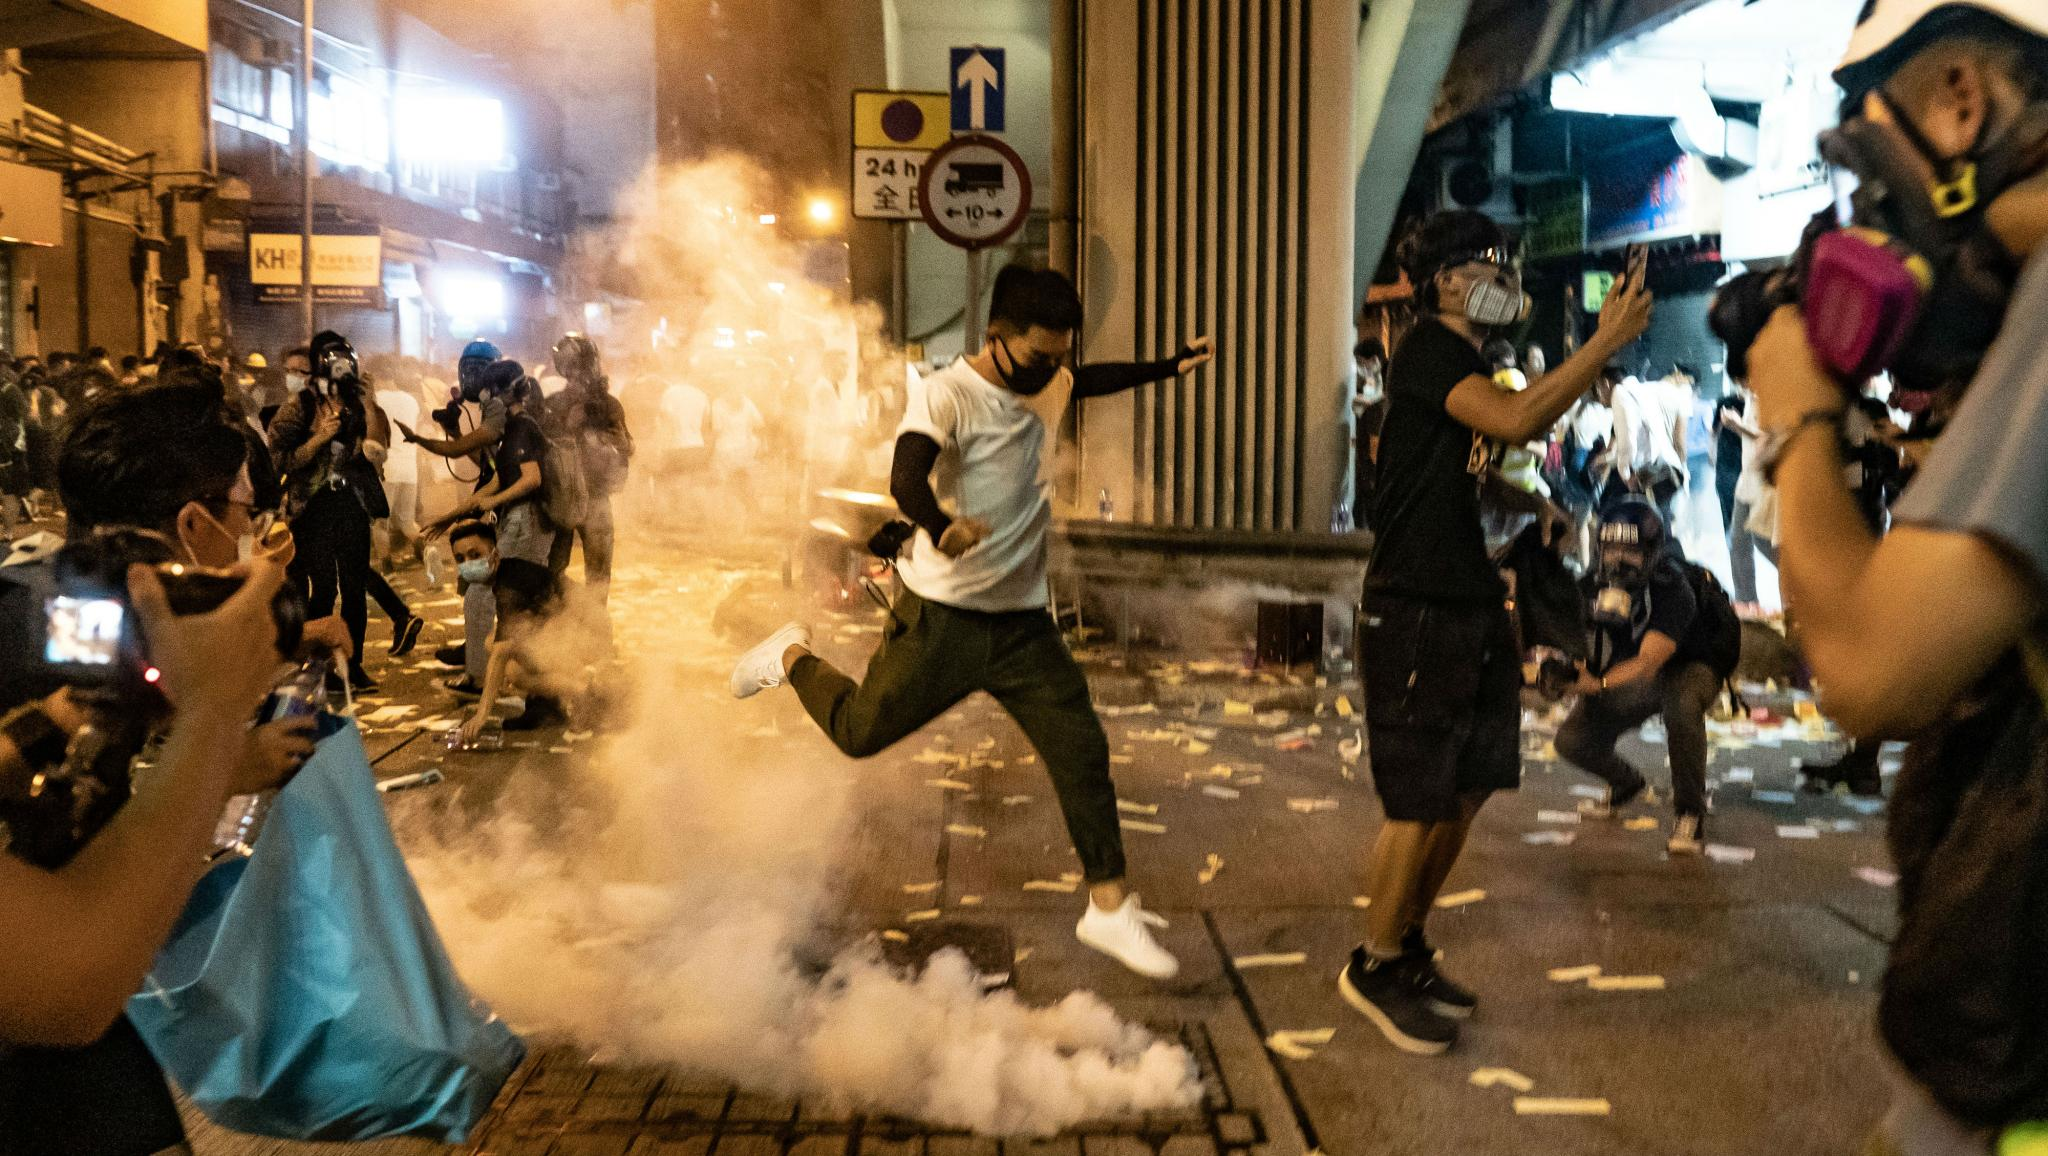 Hong Kong Government Mulls Face Mask Ban at Protests: Reports